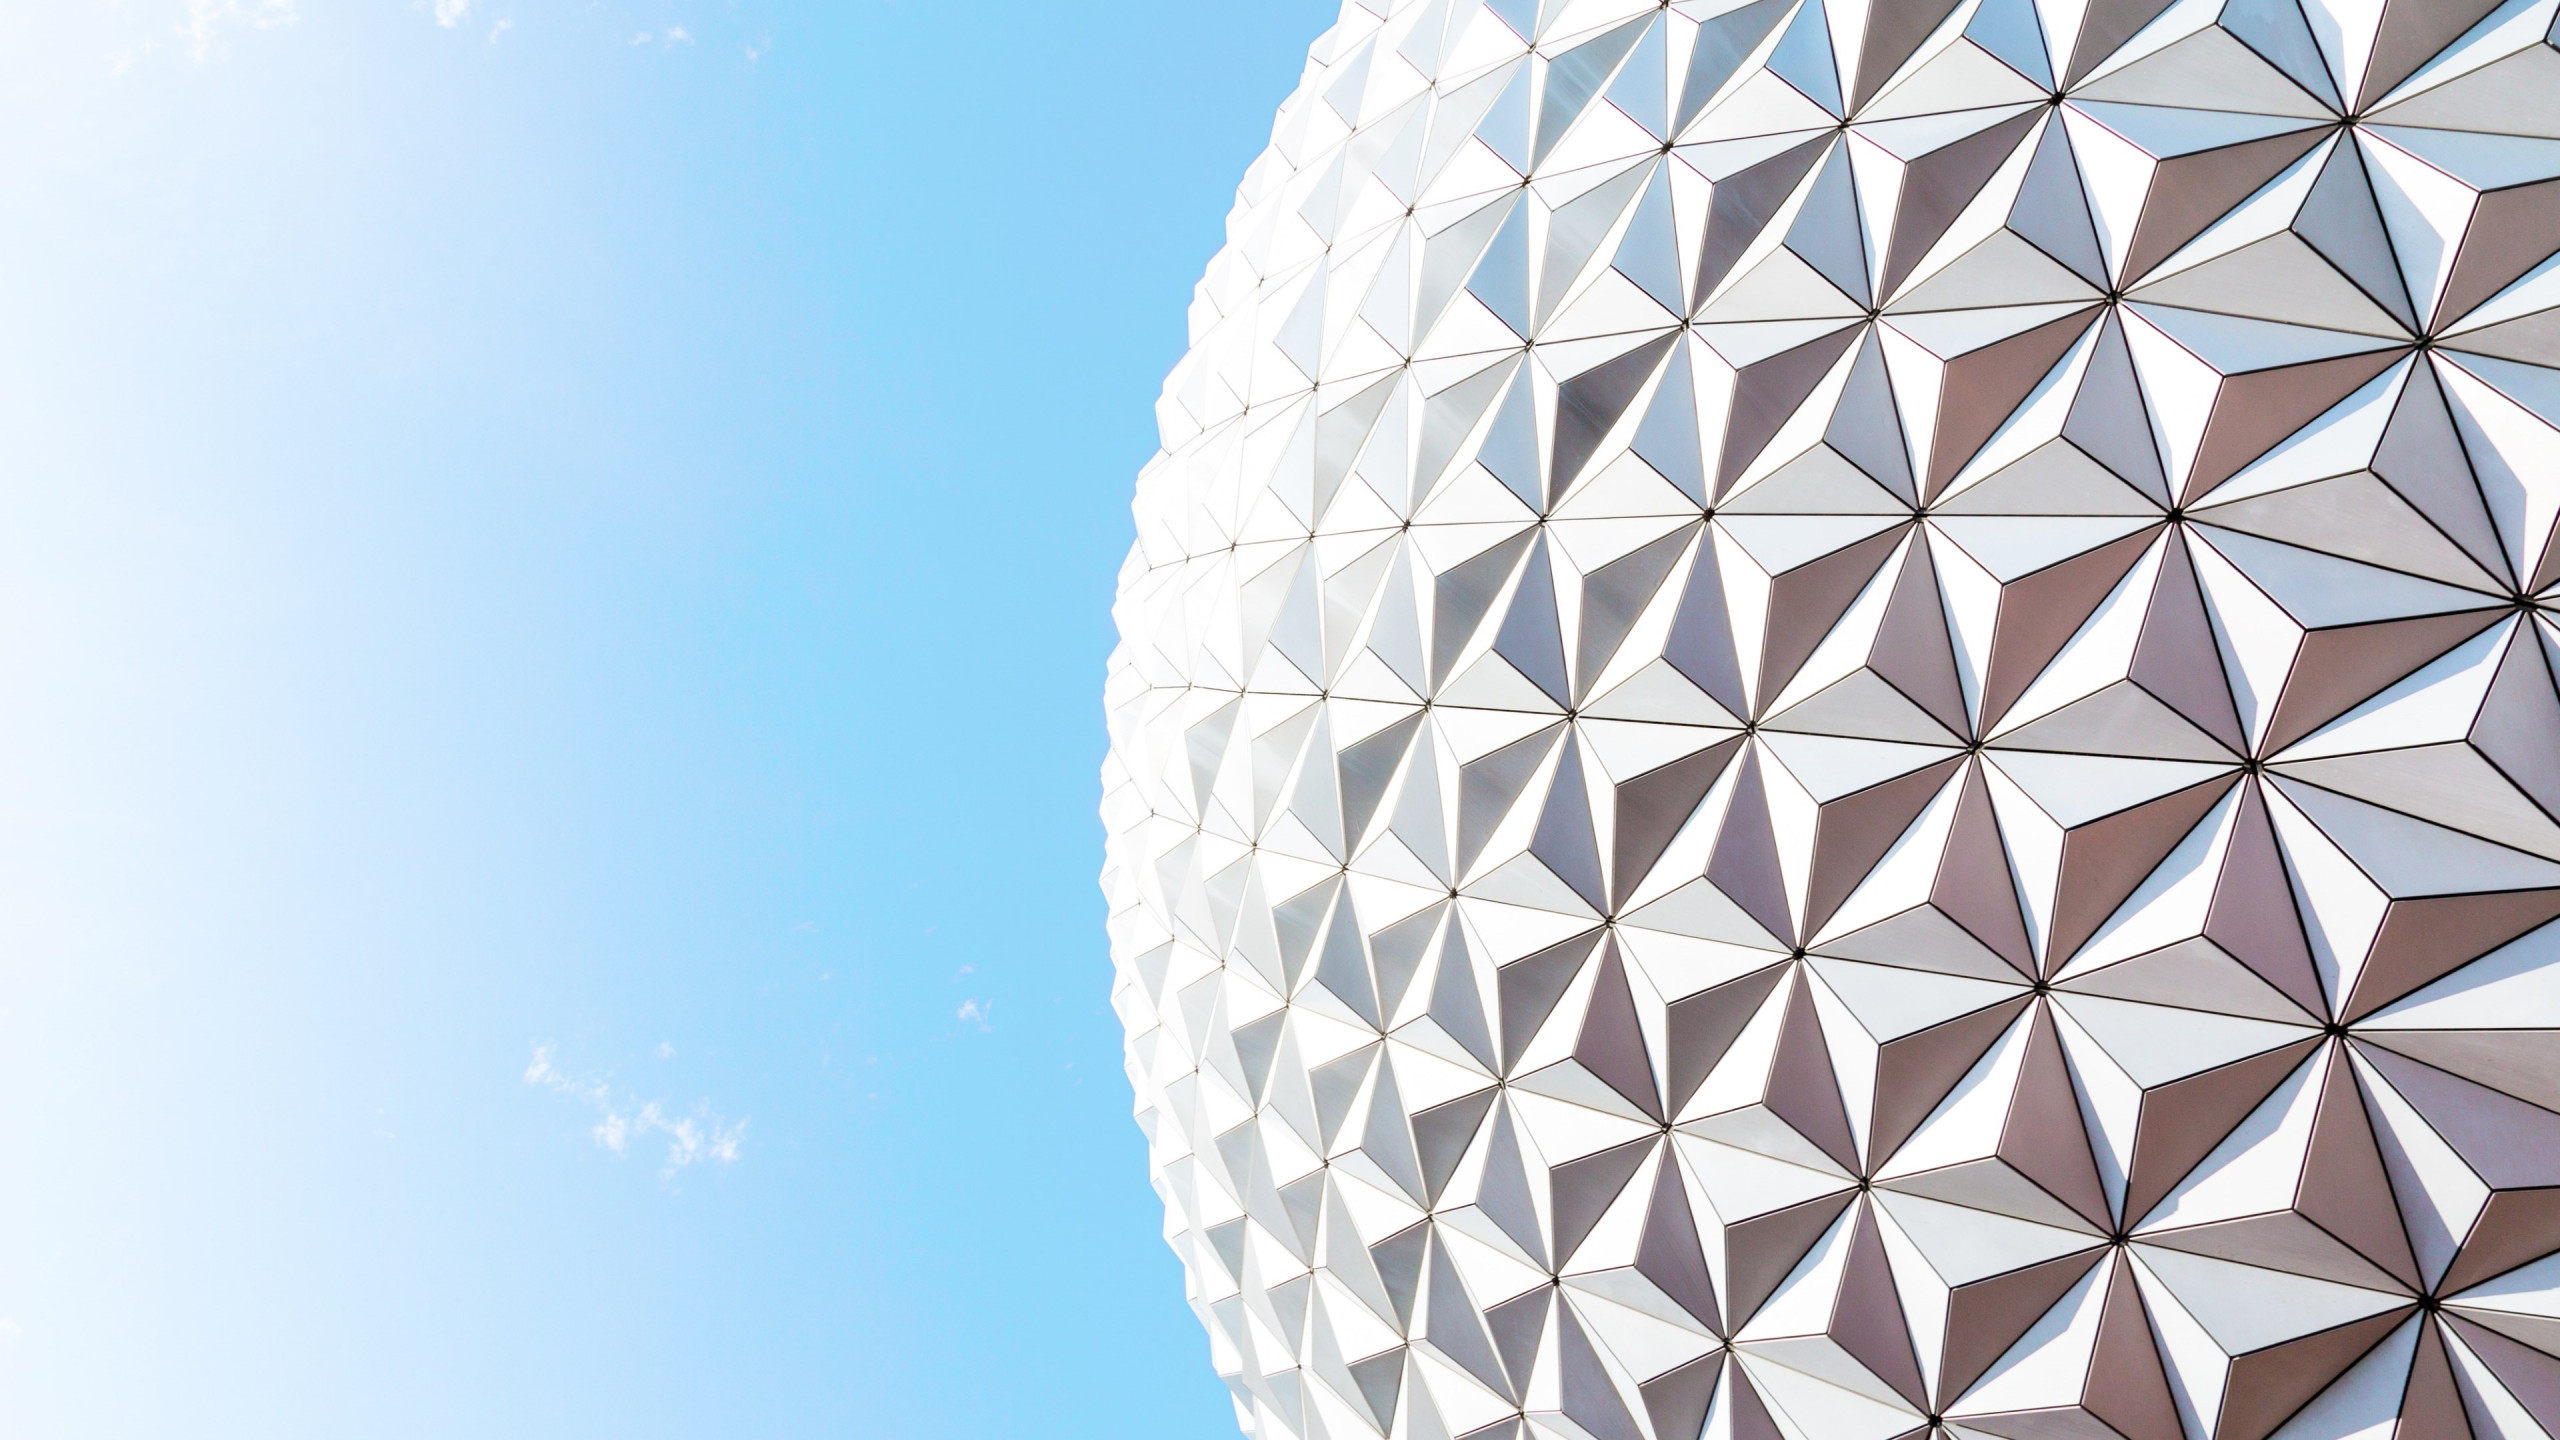 Urban Geometry, Disney World, USA wallpaper 2560x1440